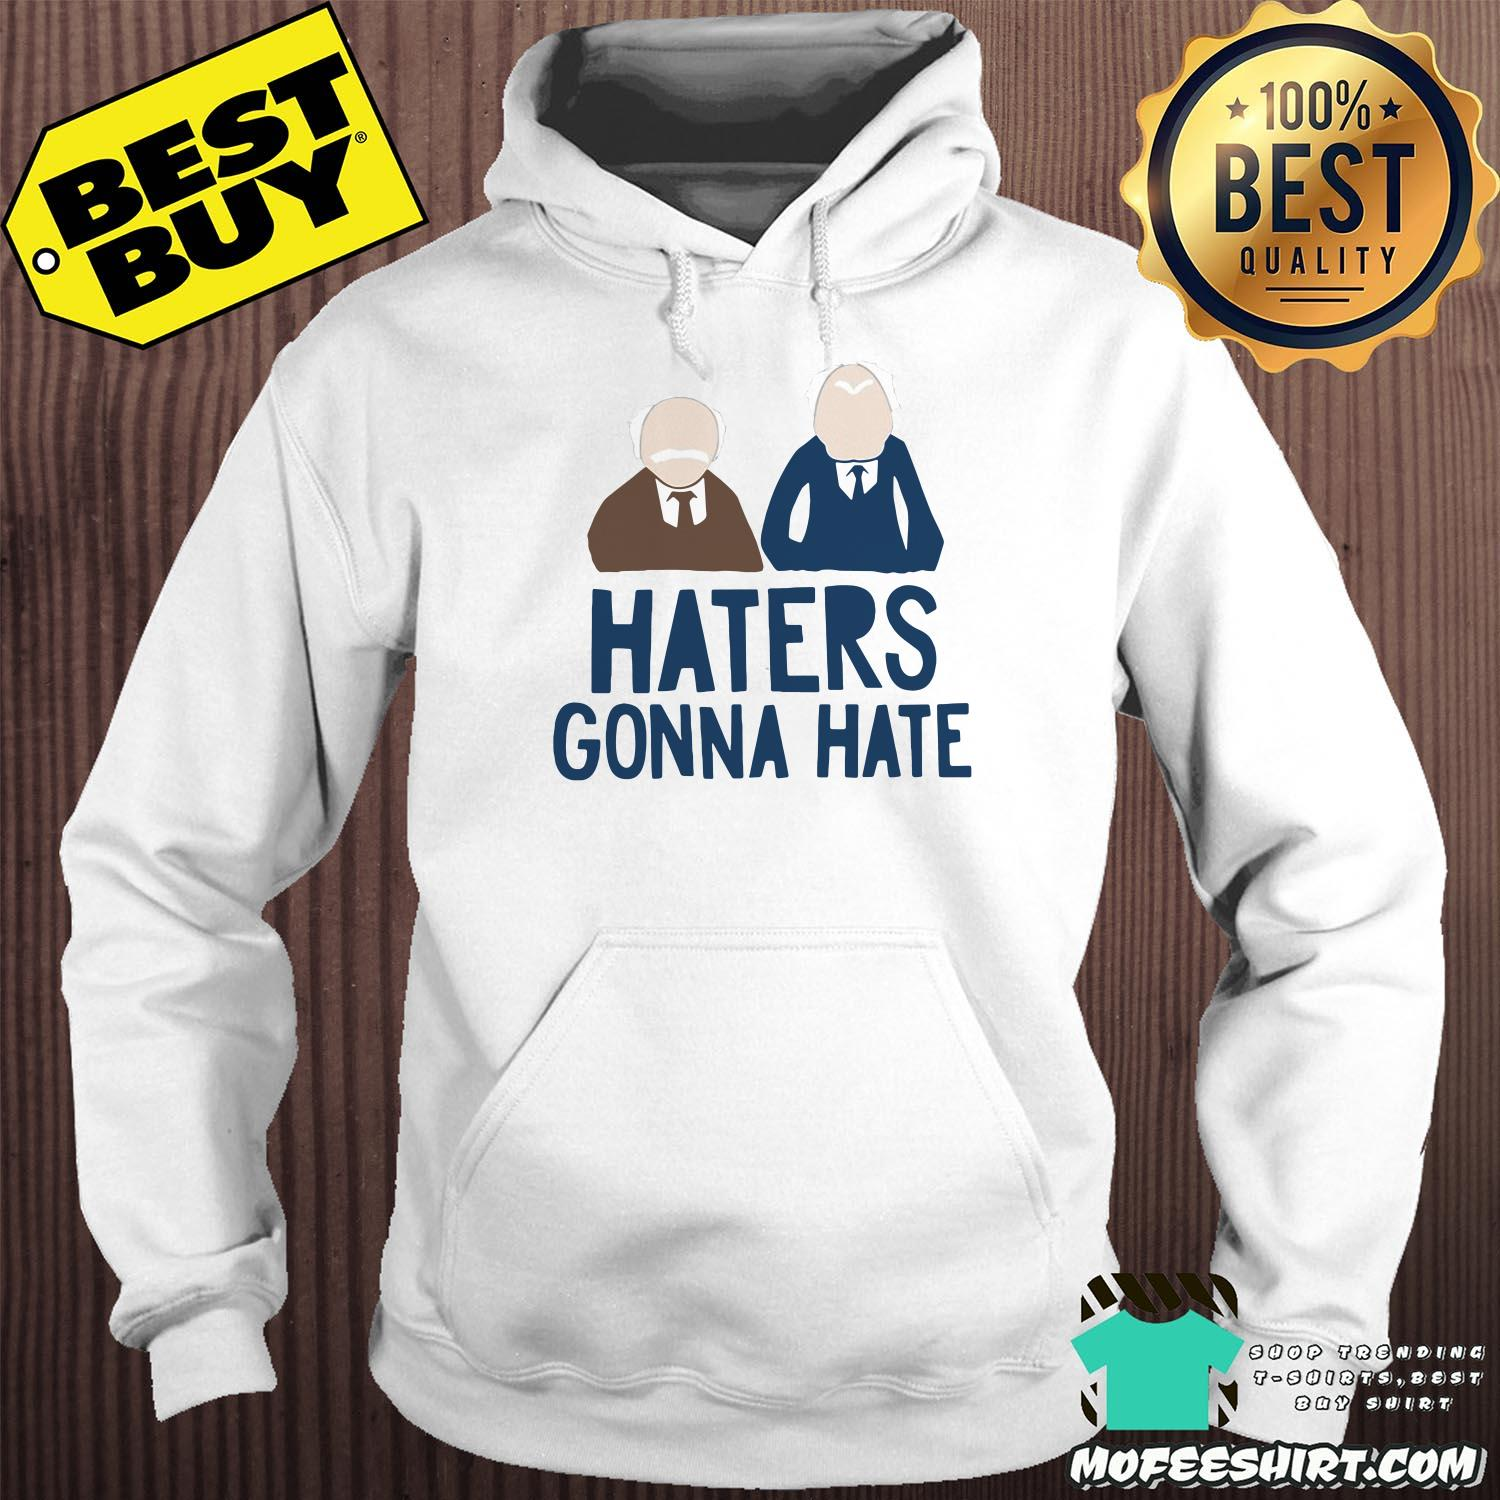 muppets haters gonna hate hoodie - Muppets Haters Gonna Hate shirt